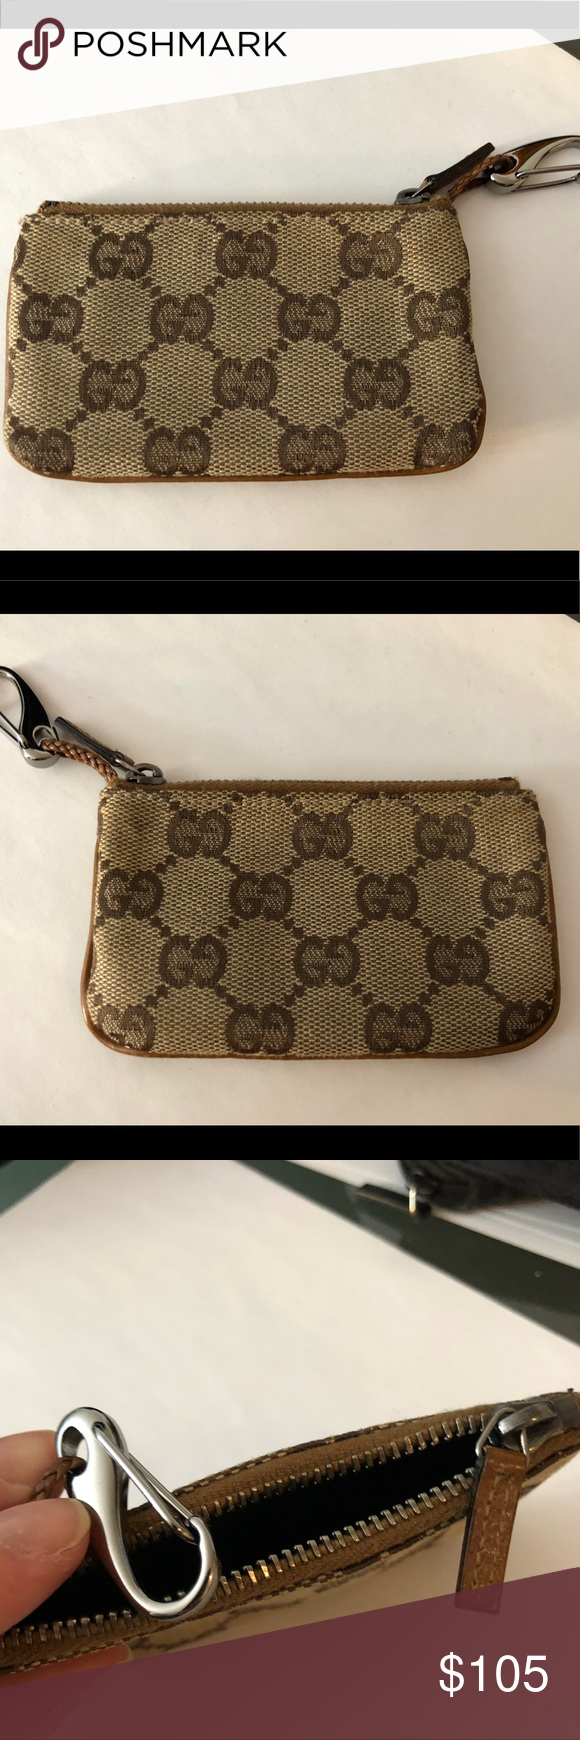 5460d55379b Gucci keychain wallet Authentic Gucci brown canvas logo keychain wallet.  Silver keychain. Perfect condition. Gucci Accessories Key   Card Holders